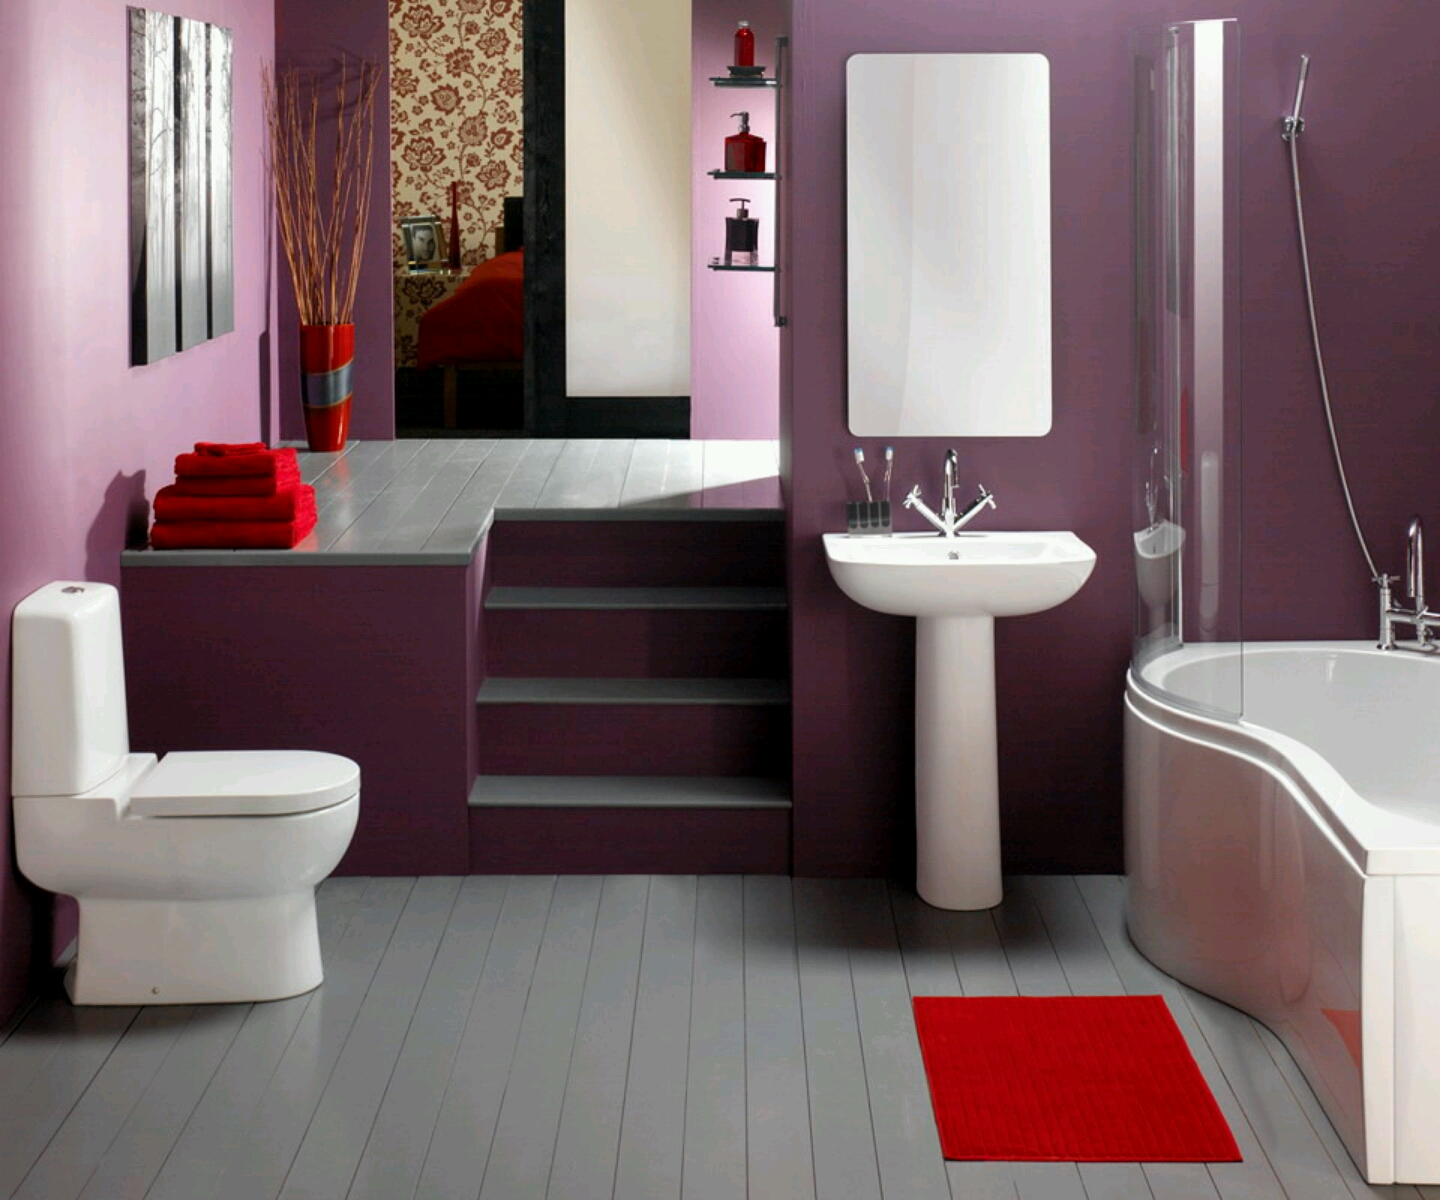 New home designs latest luxury modern bathrooms designs for Bathroom motif ideas